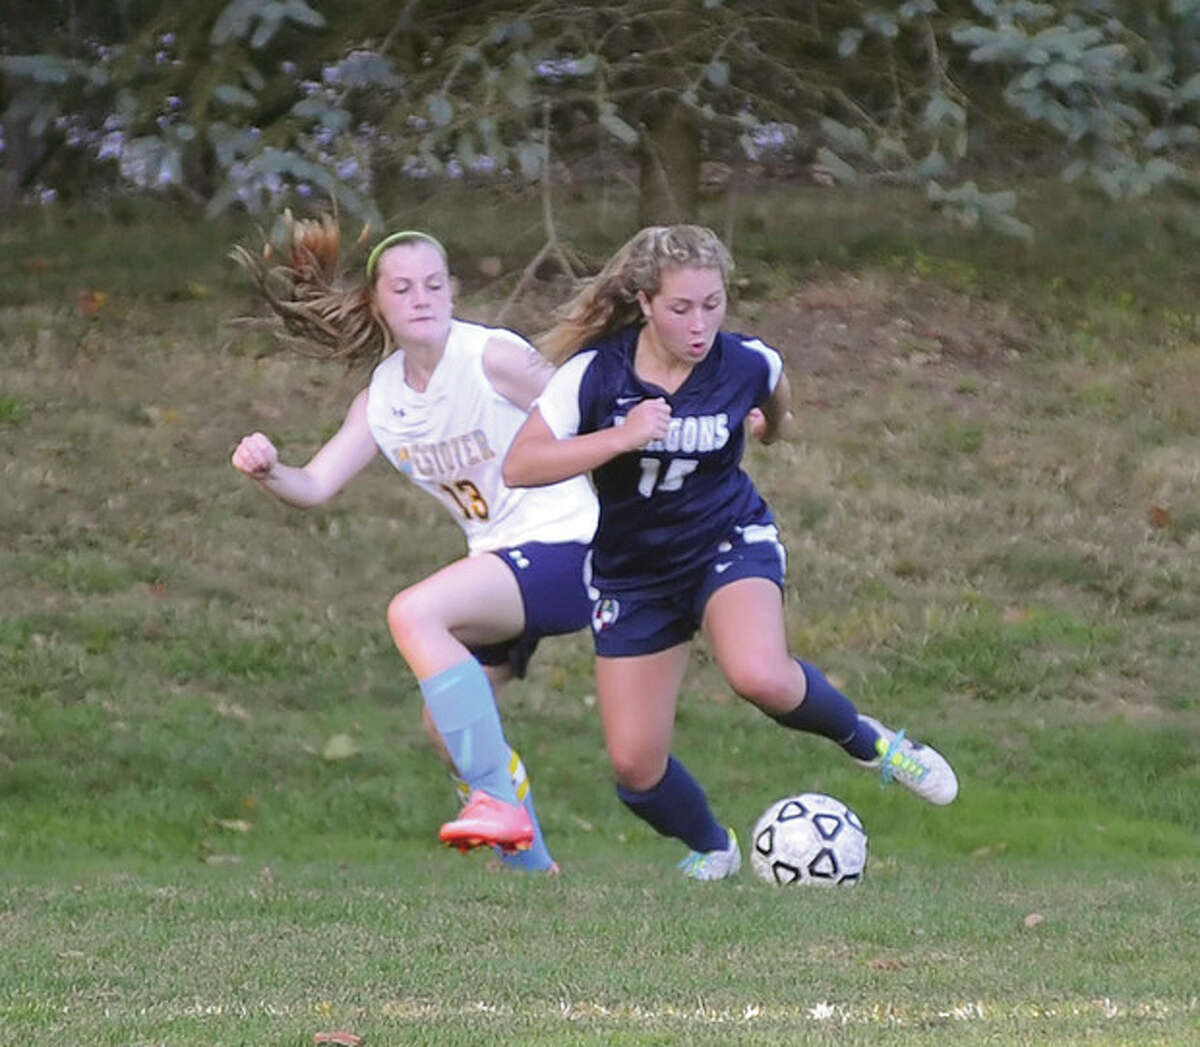 Hour photo/John Nash Greens Farms girls soccer player Olivia Lennon turns up field with the ball as a Westover player defends during Wednesday's game in Westport.